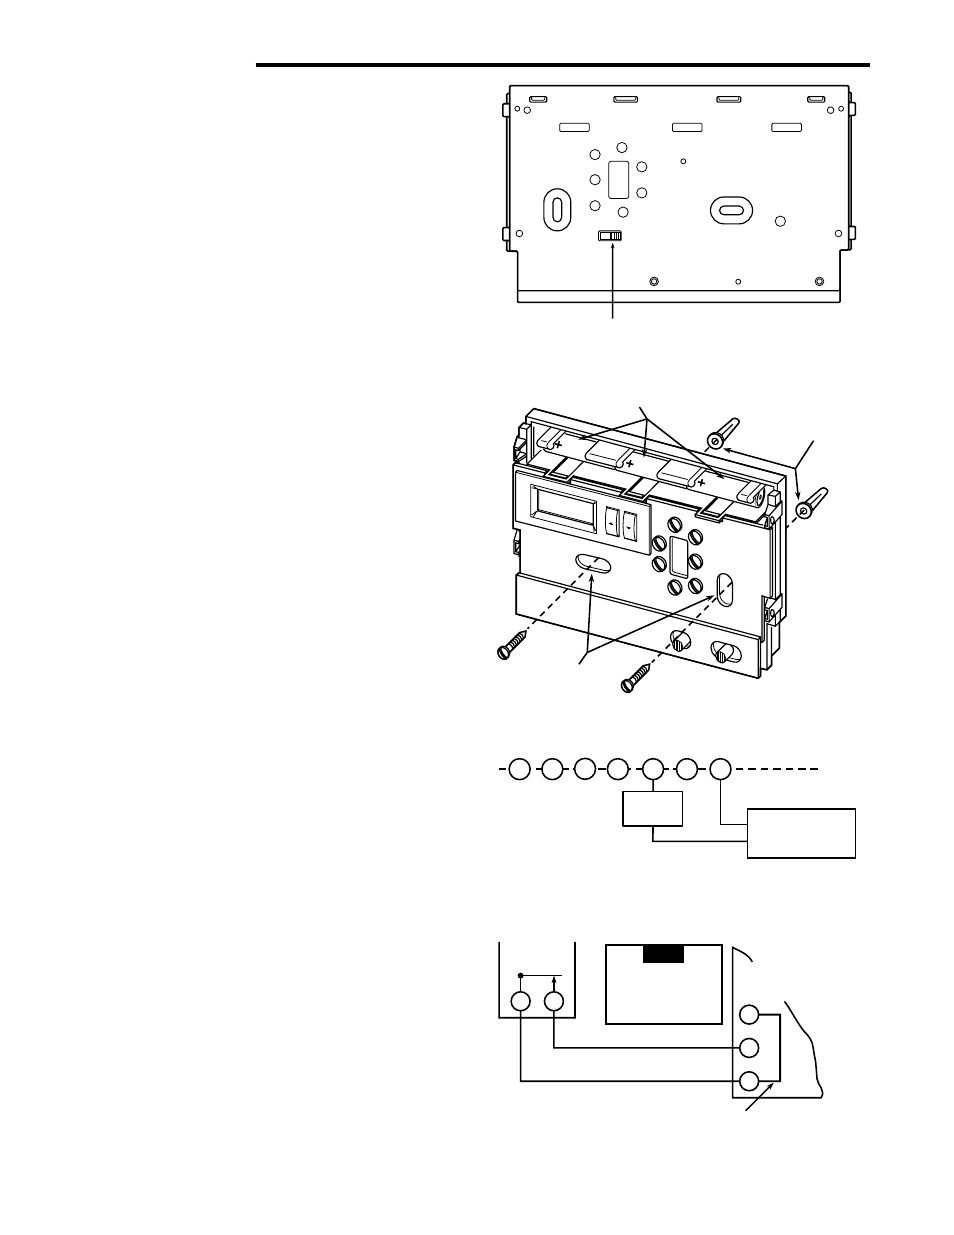 medium resolution of installation remove old thermostat attach thermostat base to wall white rodgers 1f86 444 user manual page 2 4